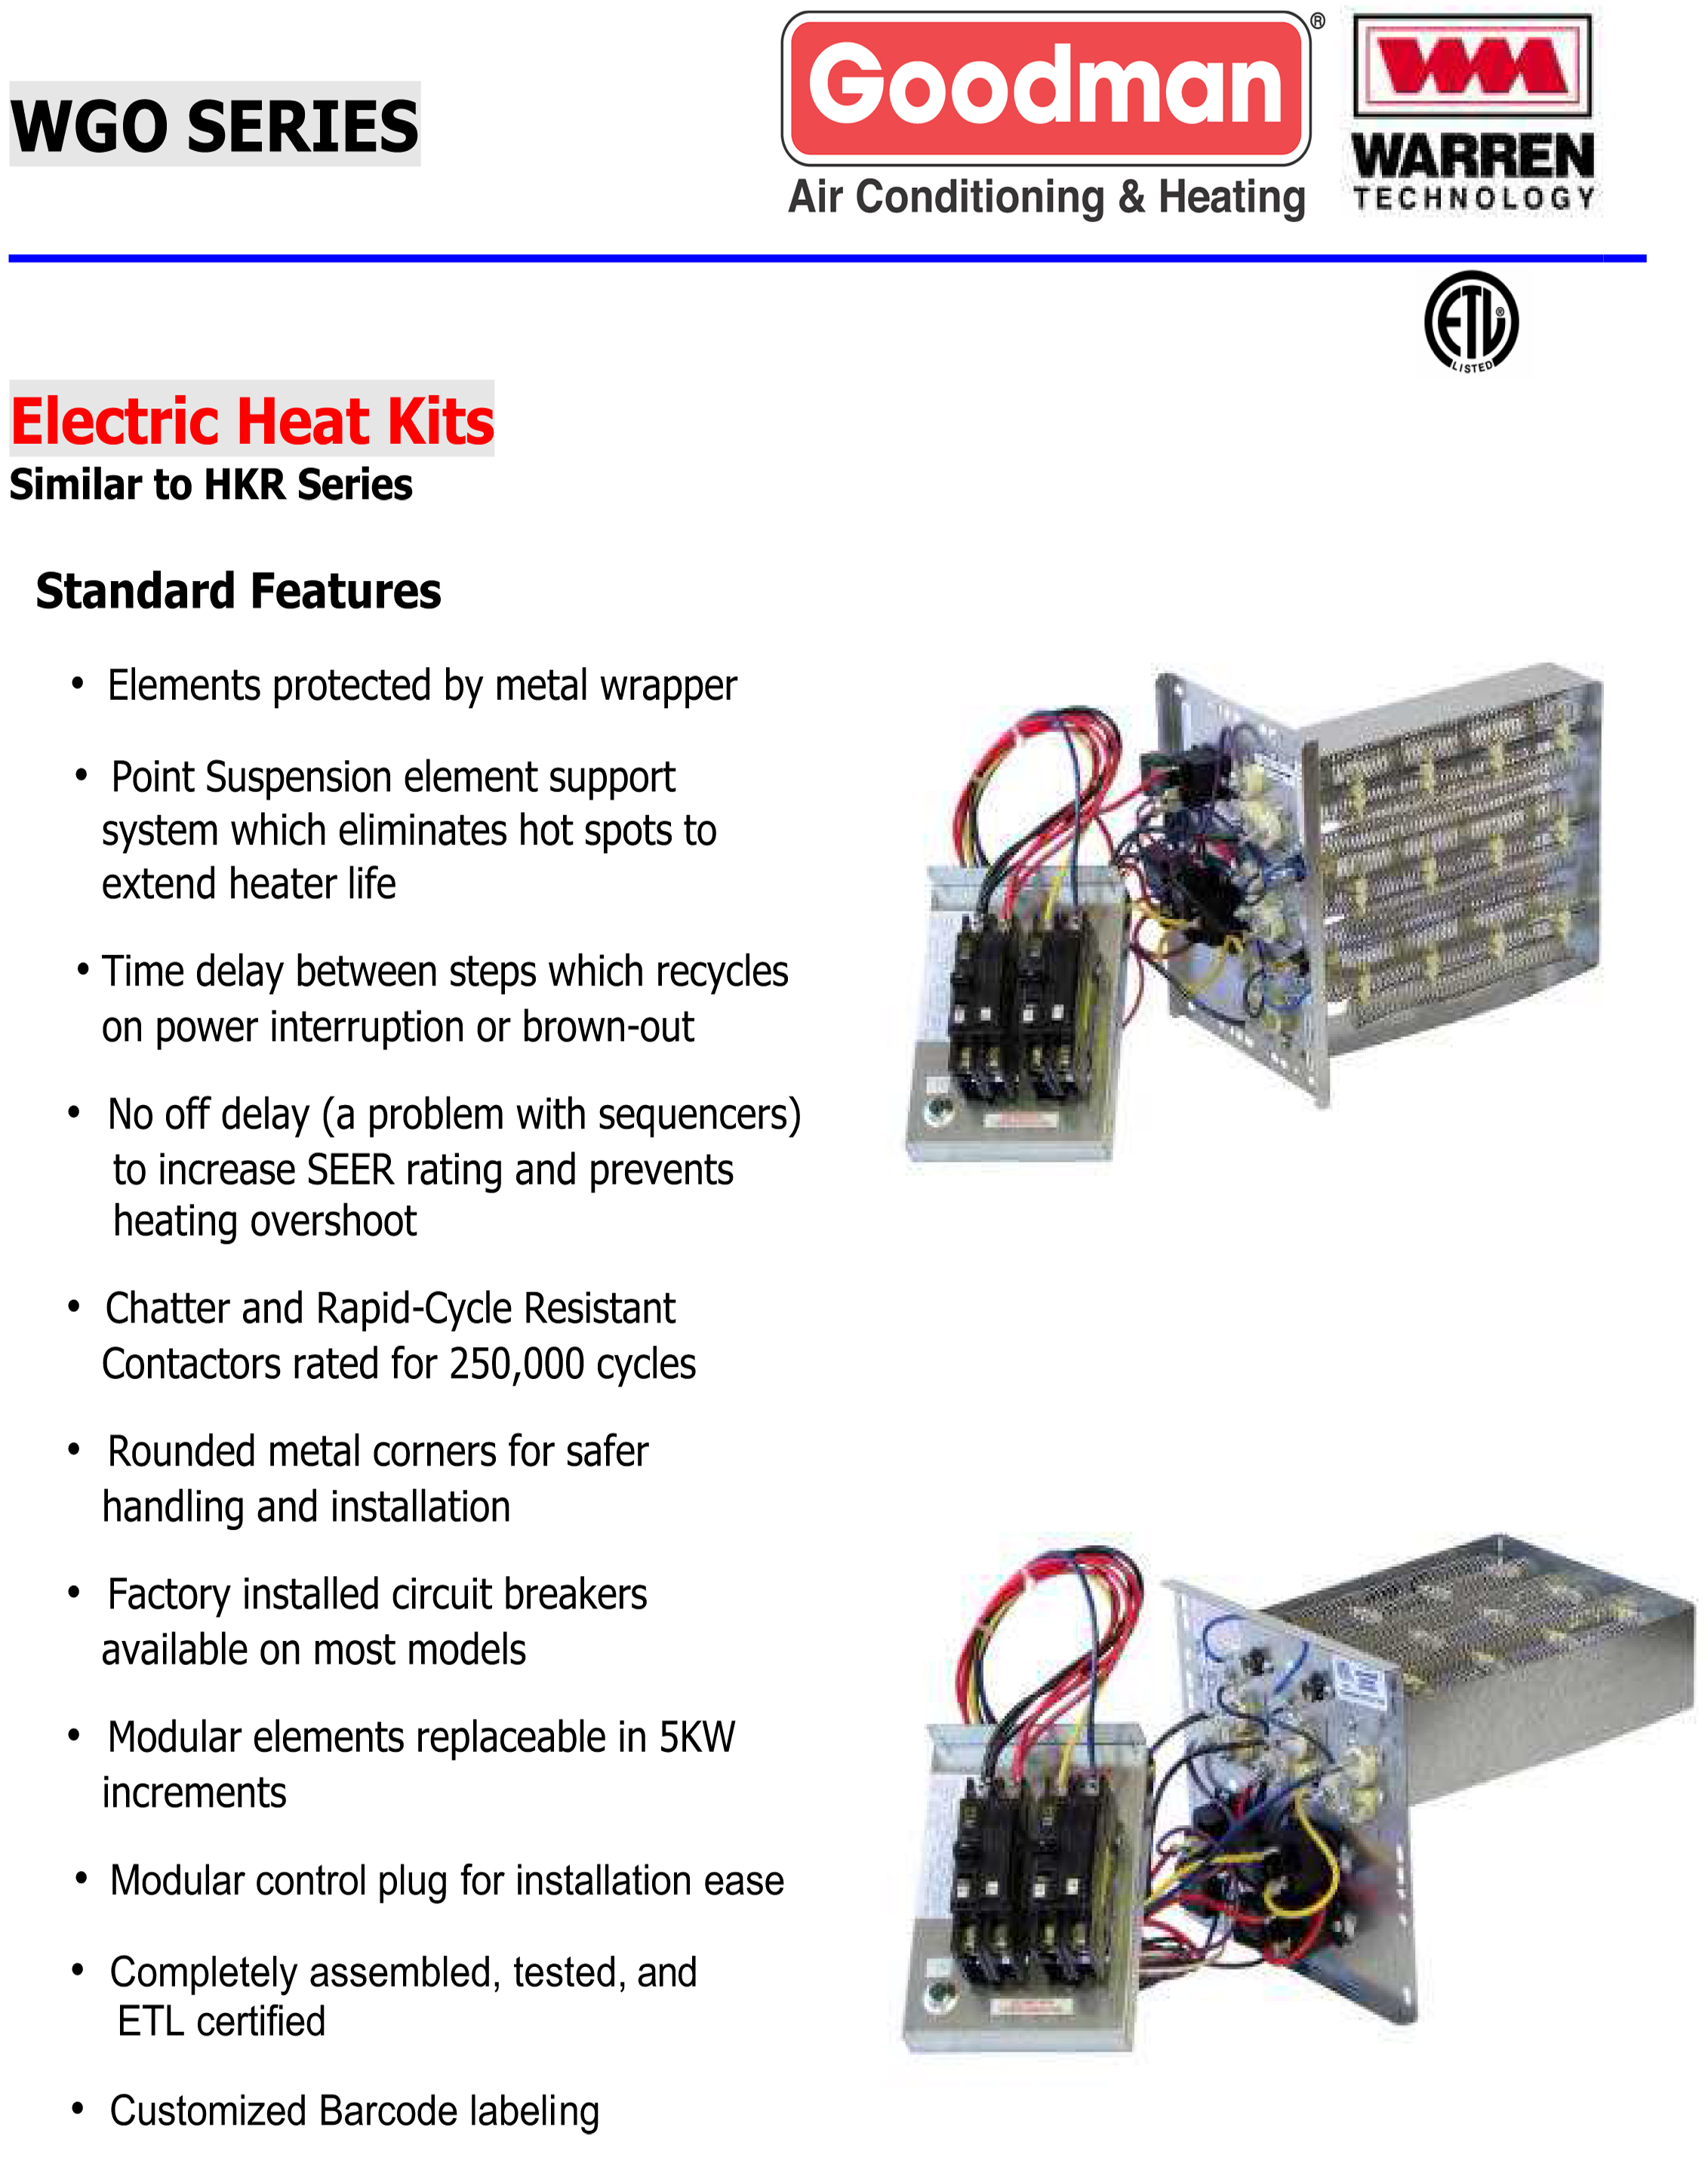 goodman wgo brochure 15 kw heat strip for goodman units ar, aer, adp, arp, aspf, aep goodman package unit wiring diagram at crackthecode.co